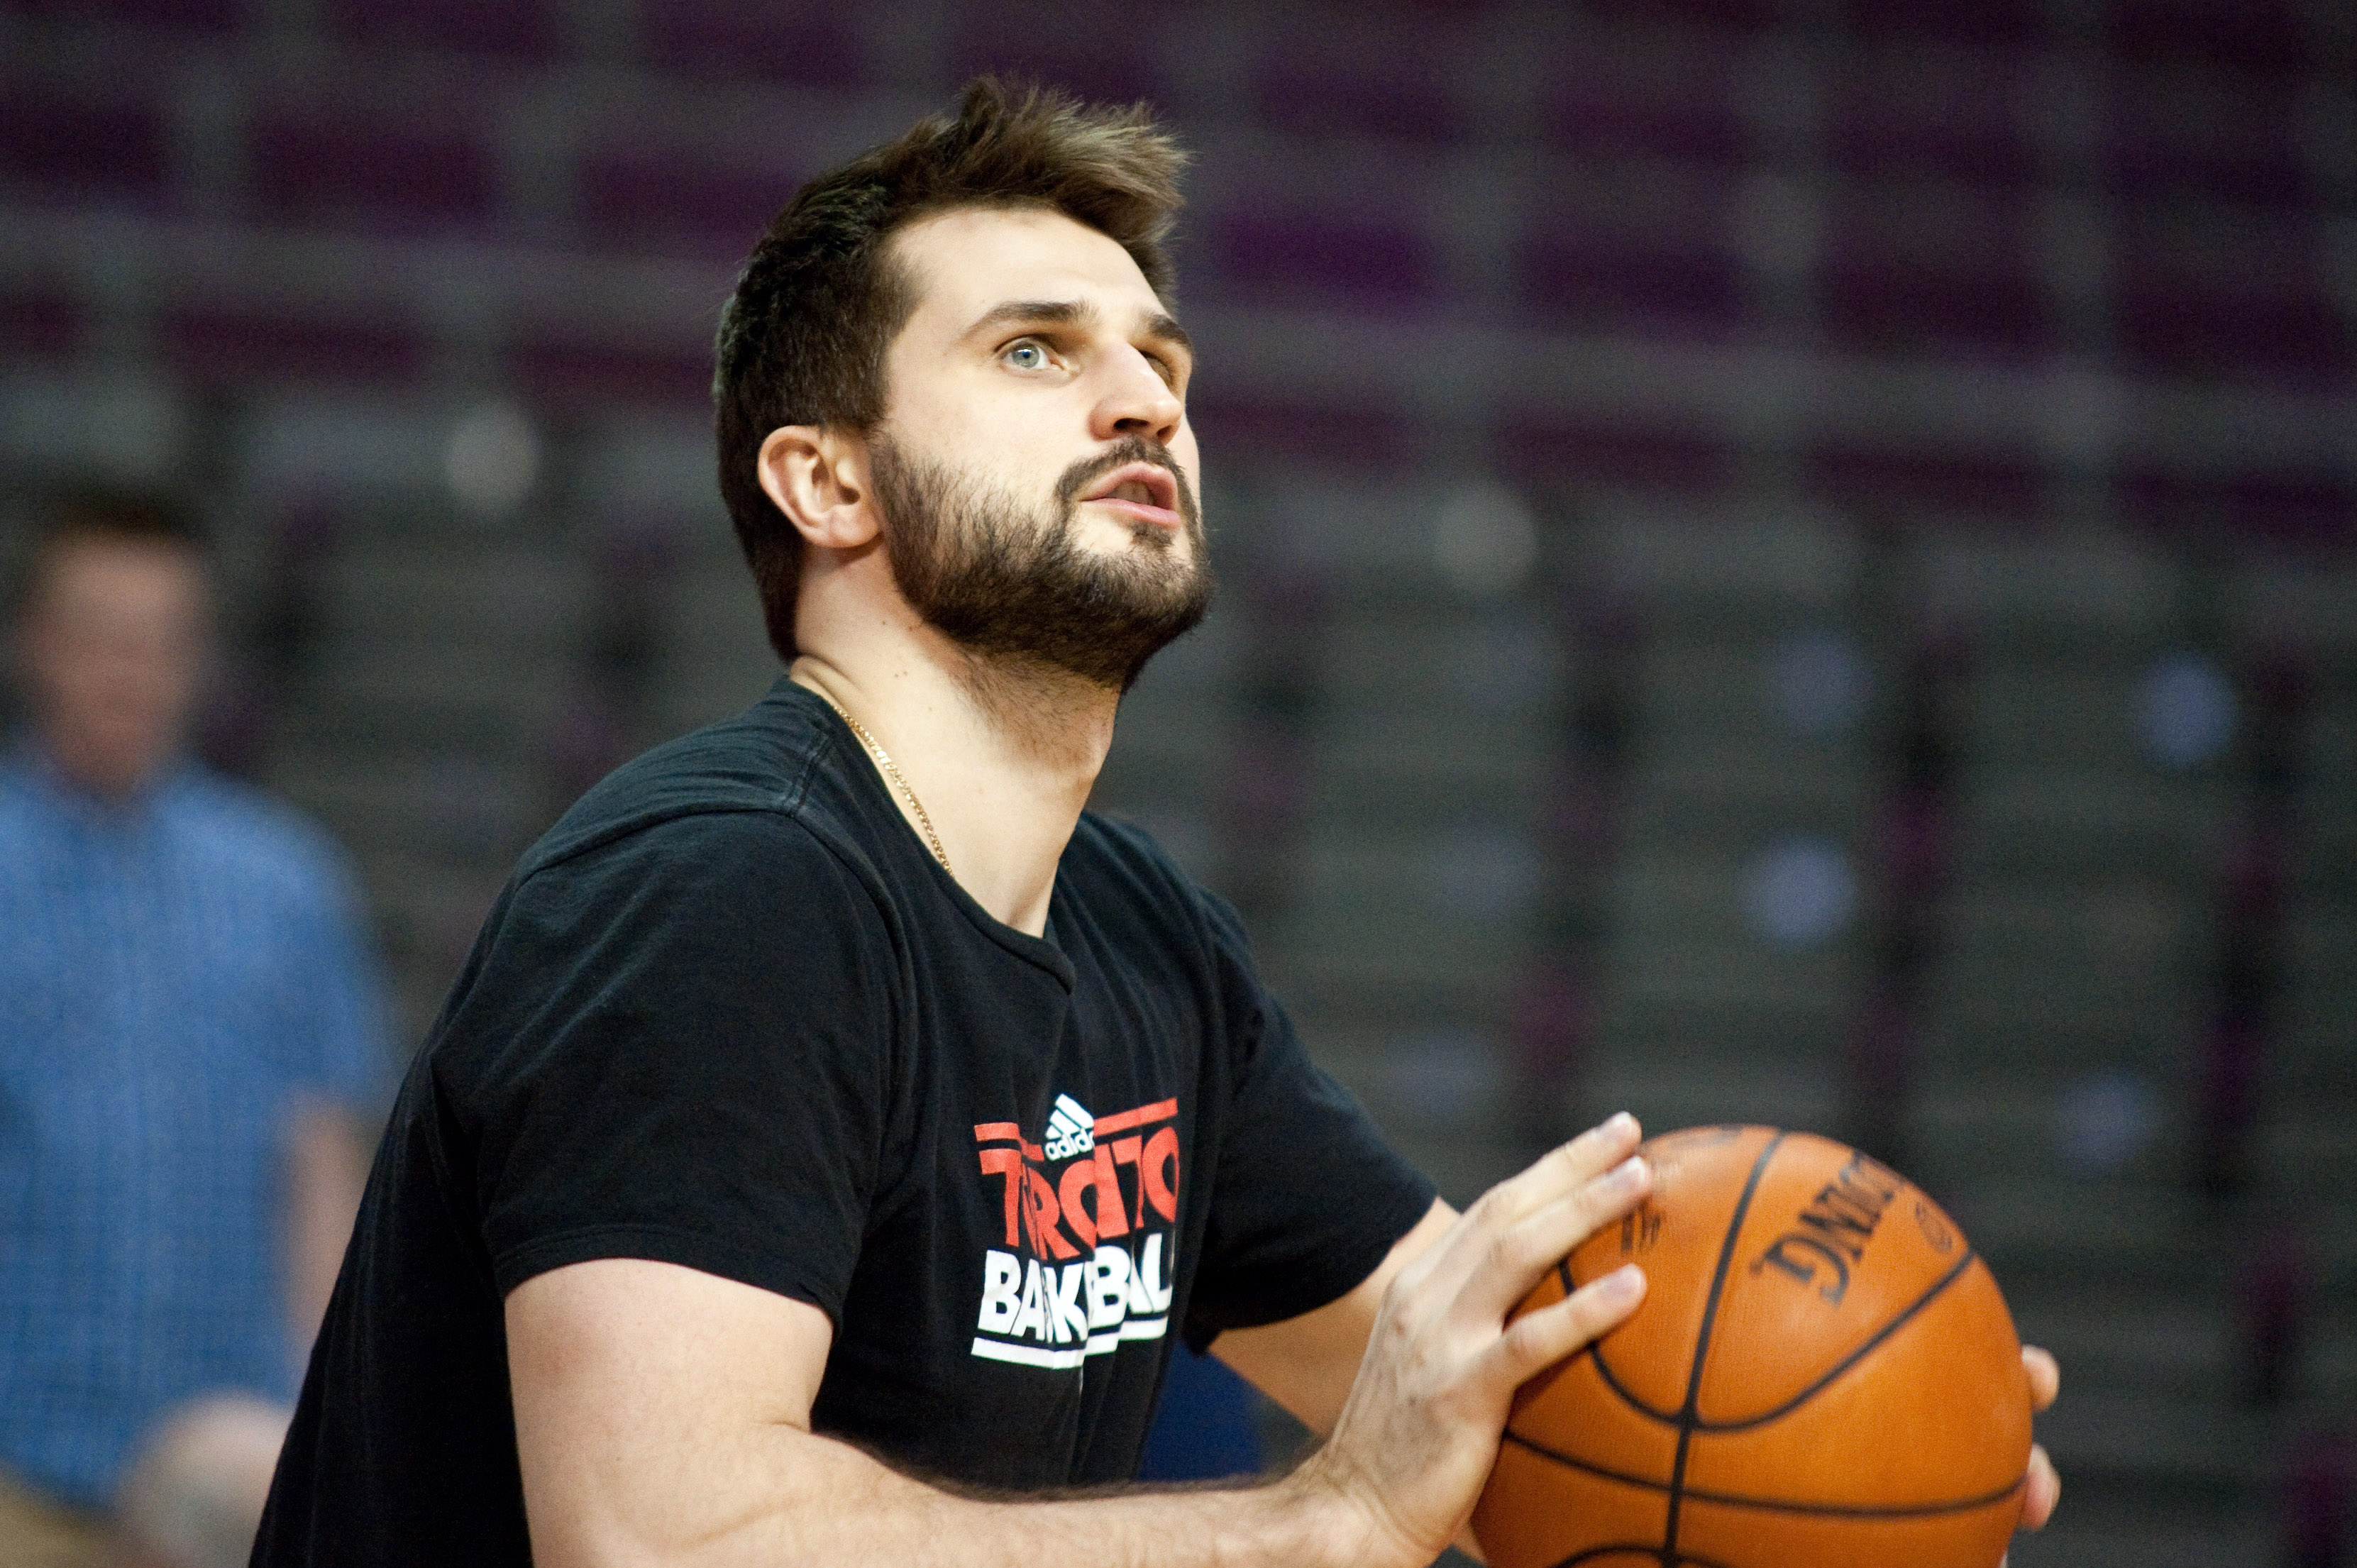 Linas Kleiza played in just 20 games for the Raptors last season. (USA Today Sports)